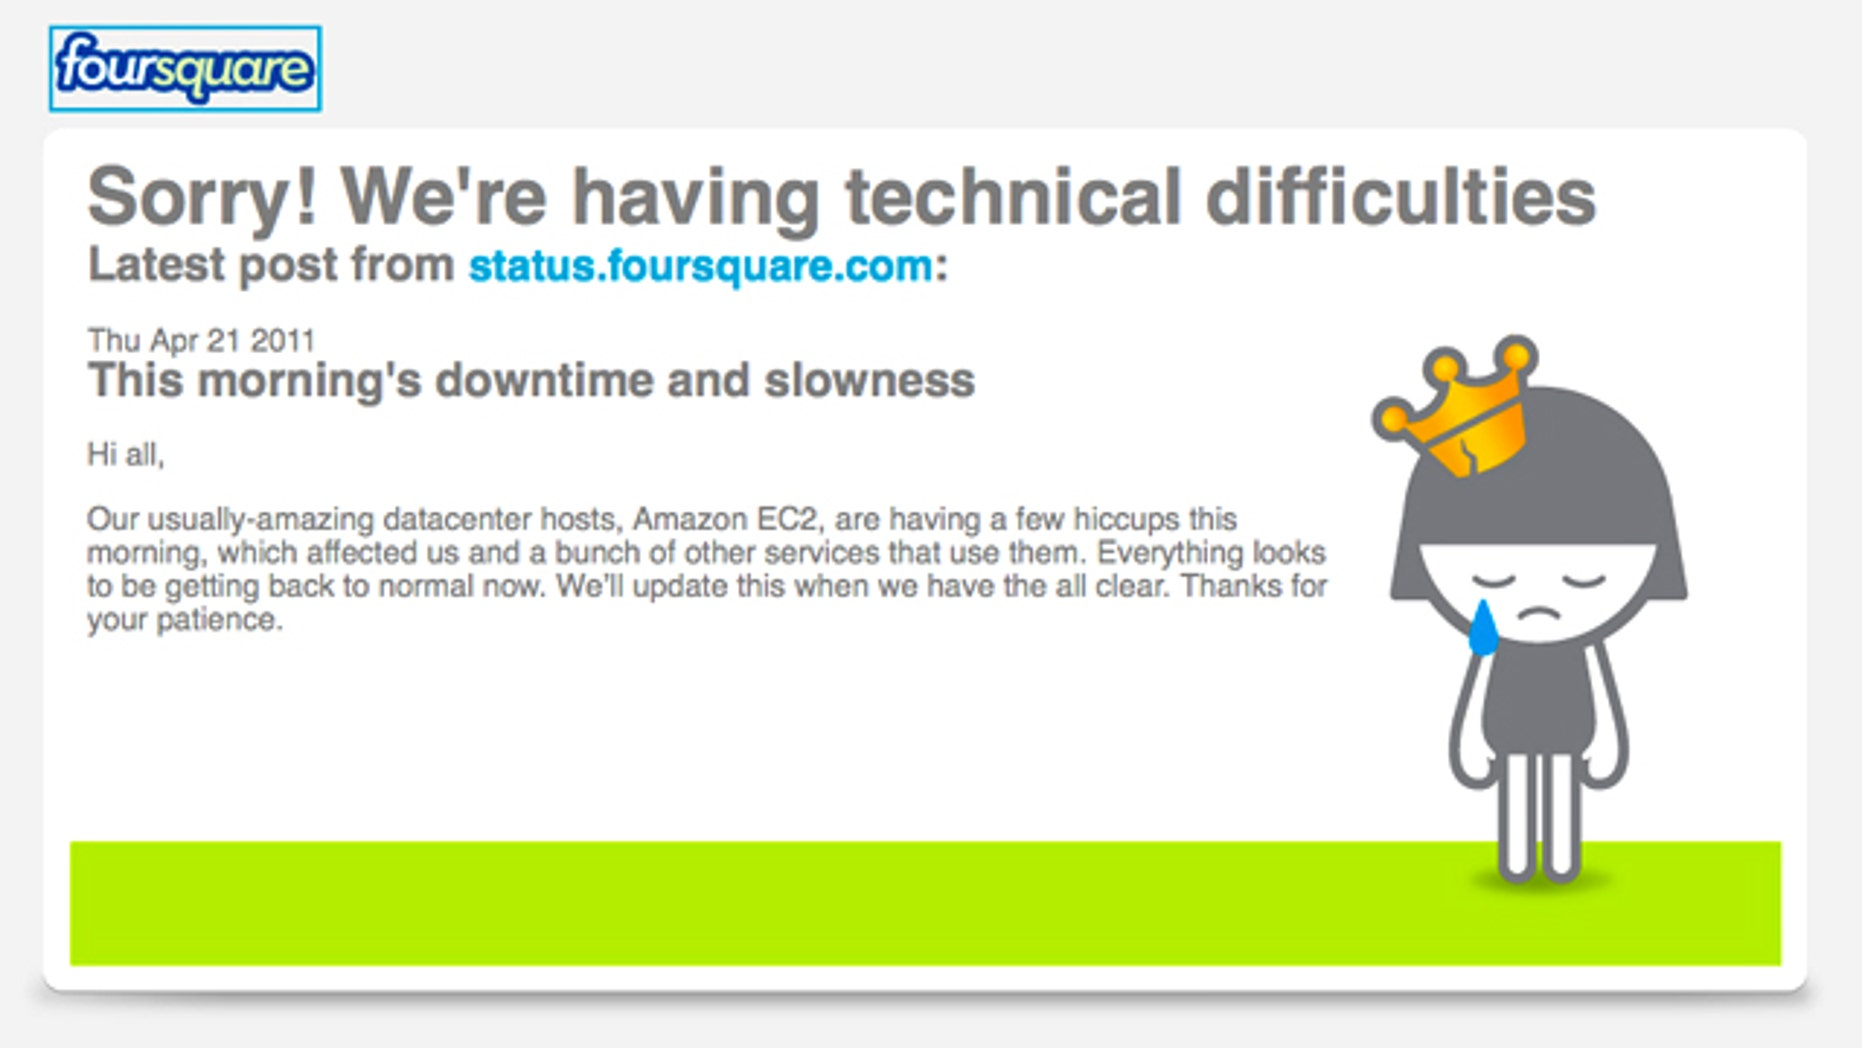 In this screen shot of the fousquare.com website, an apology for technical difficulties is displayed. Dozens of major websites including Foursquare, Reddit and others crashed or suffered severe slowdowns after technical problems troubled their hosting company, Amazon.com.